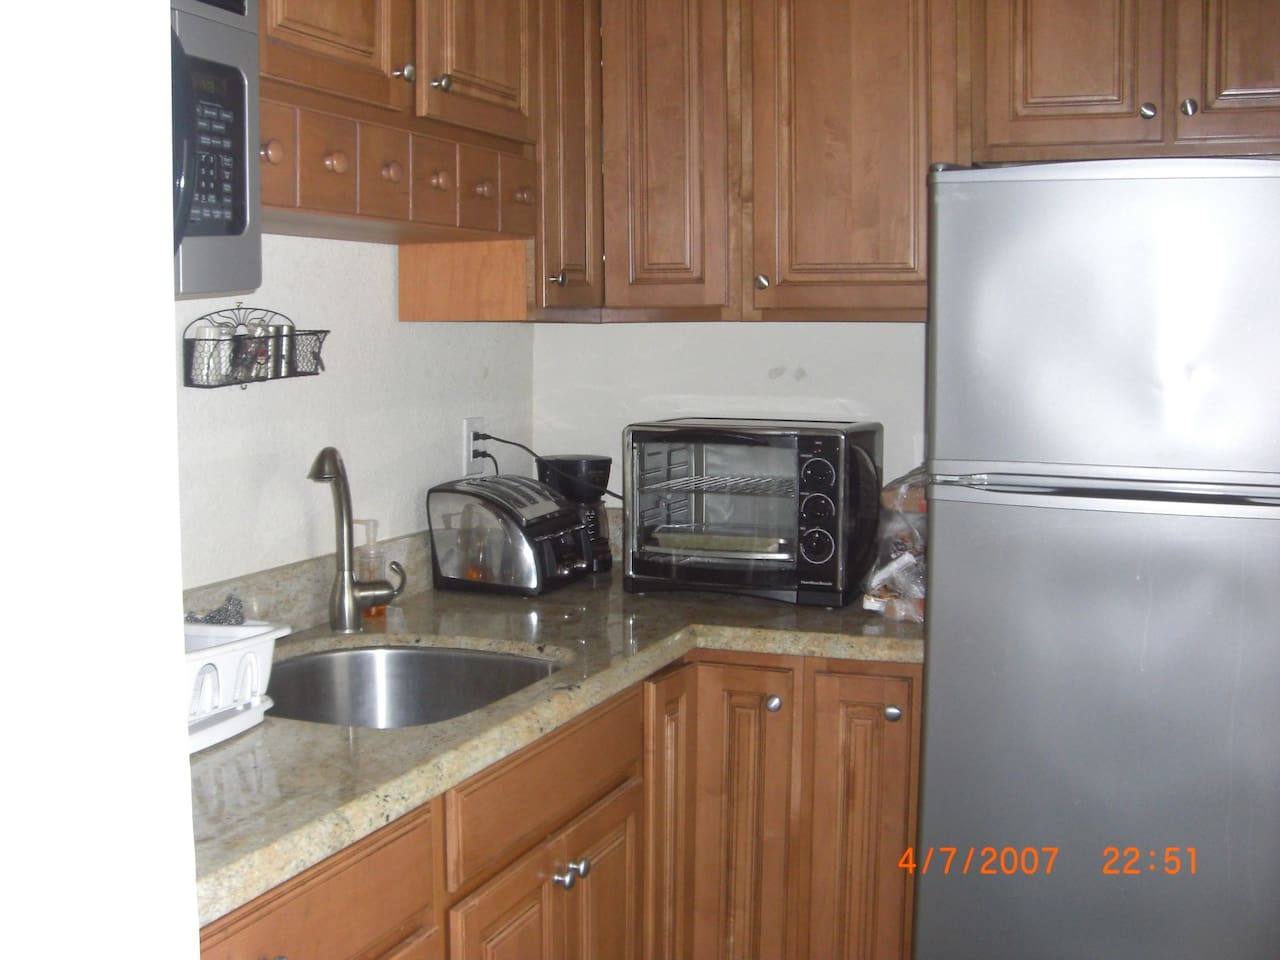 Brand new Granite kitchen and cabinets. Full size refrigerator, large toaster oven, coffee maker, built in microwave, no dishwasher. Private entrance to unit is on right of refrigerator.